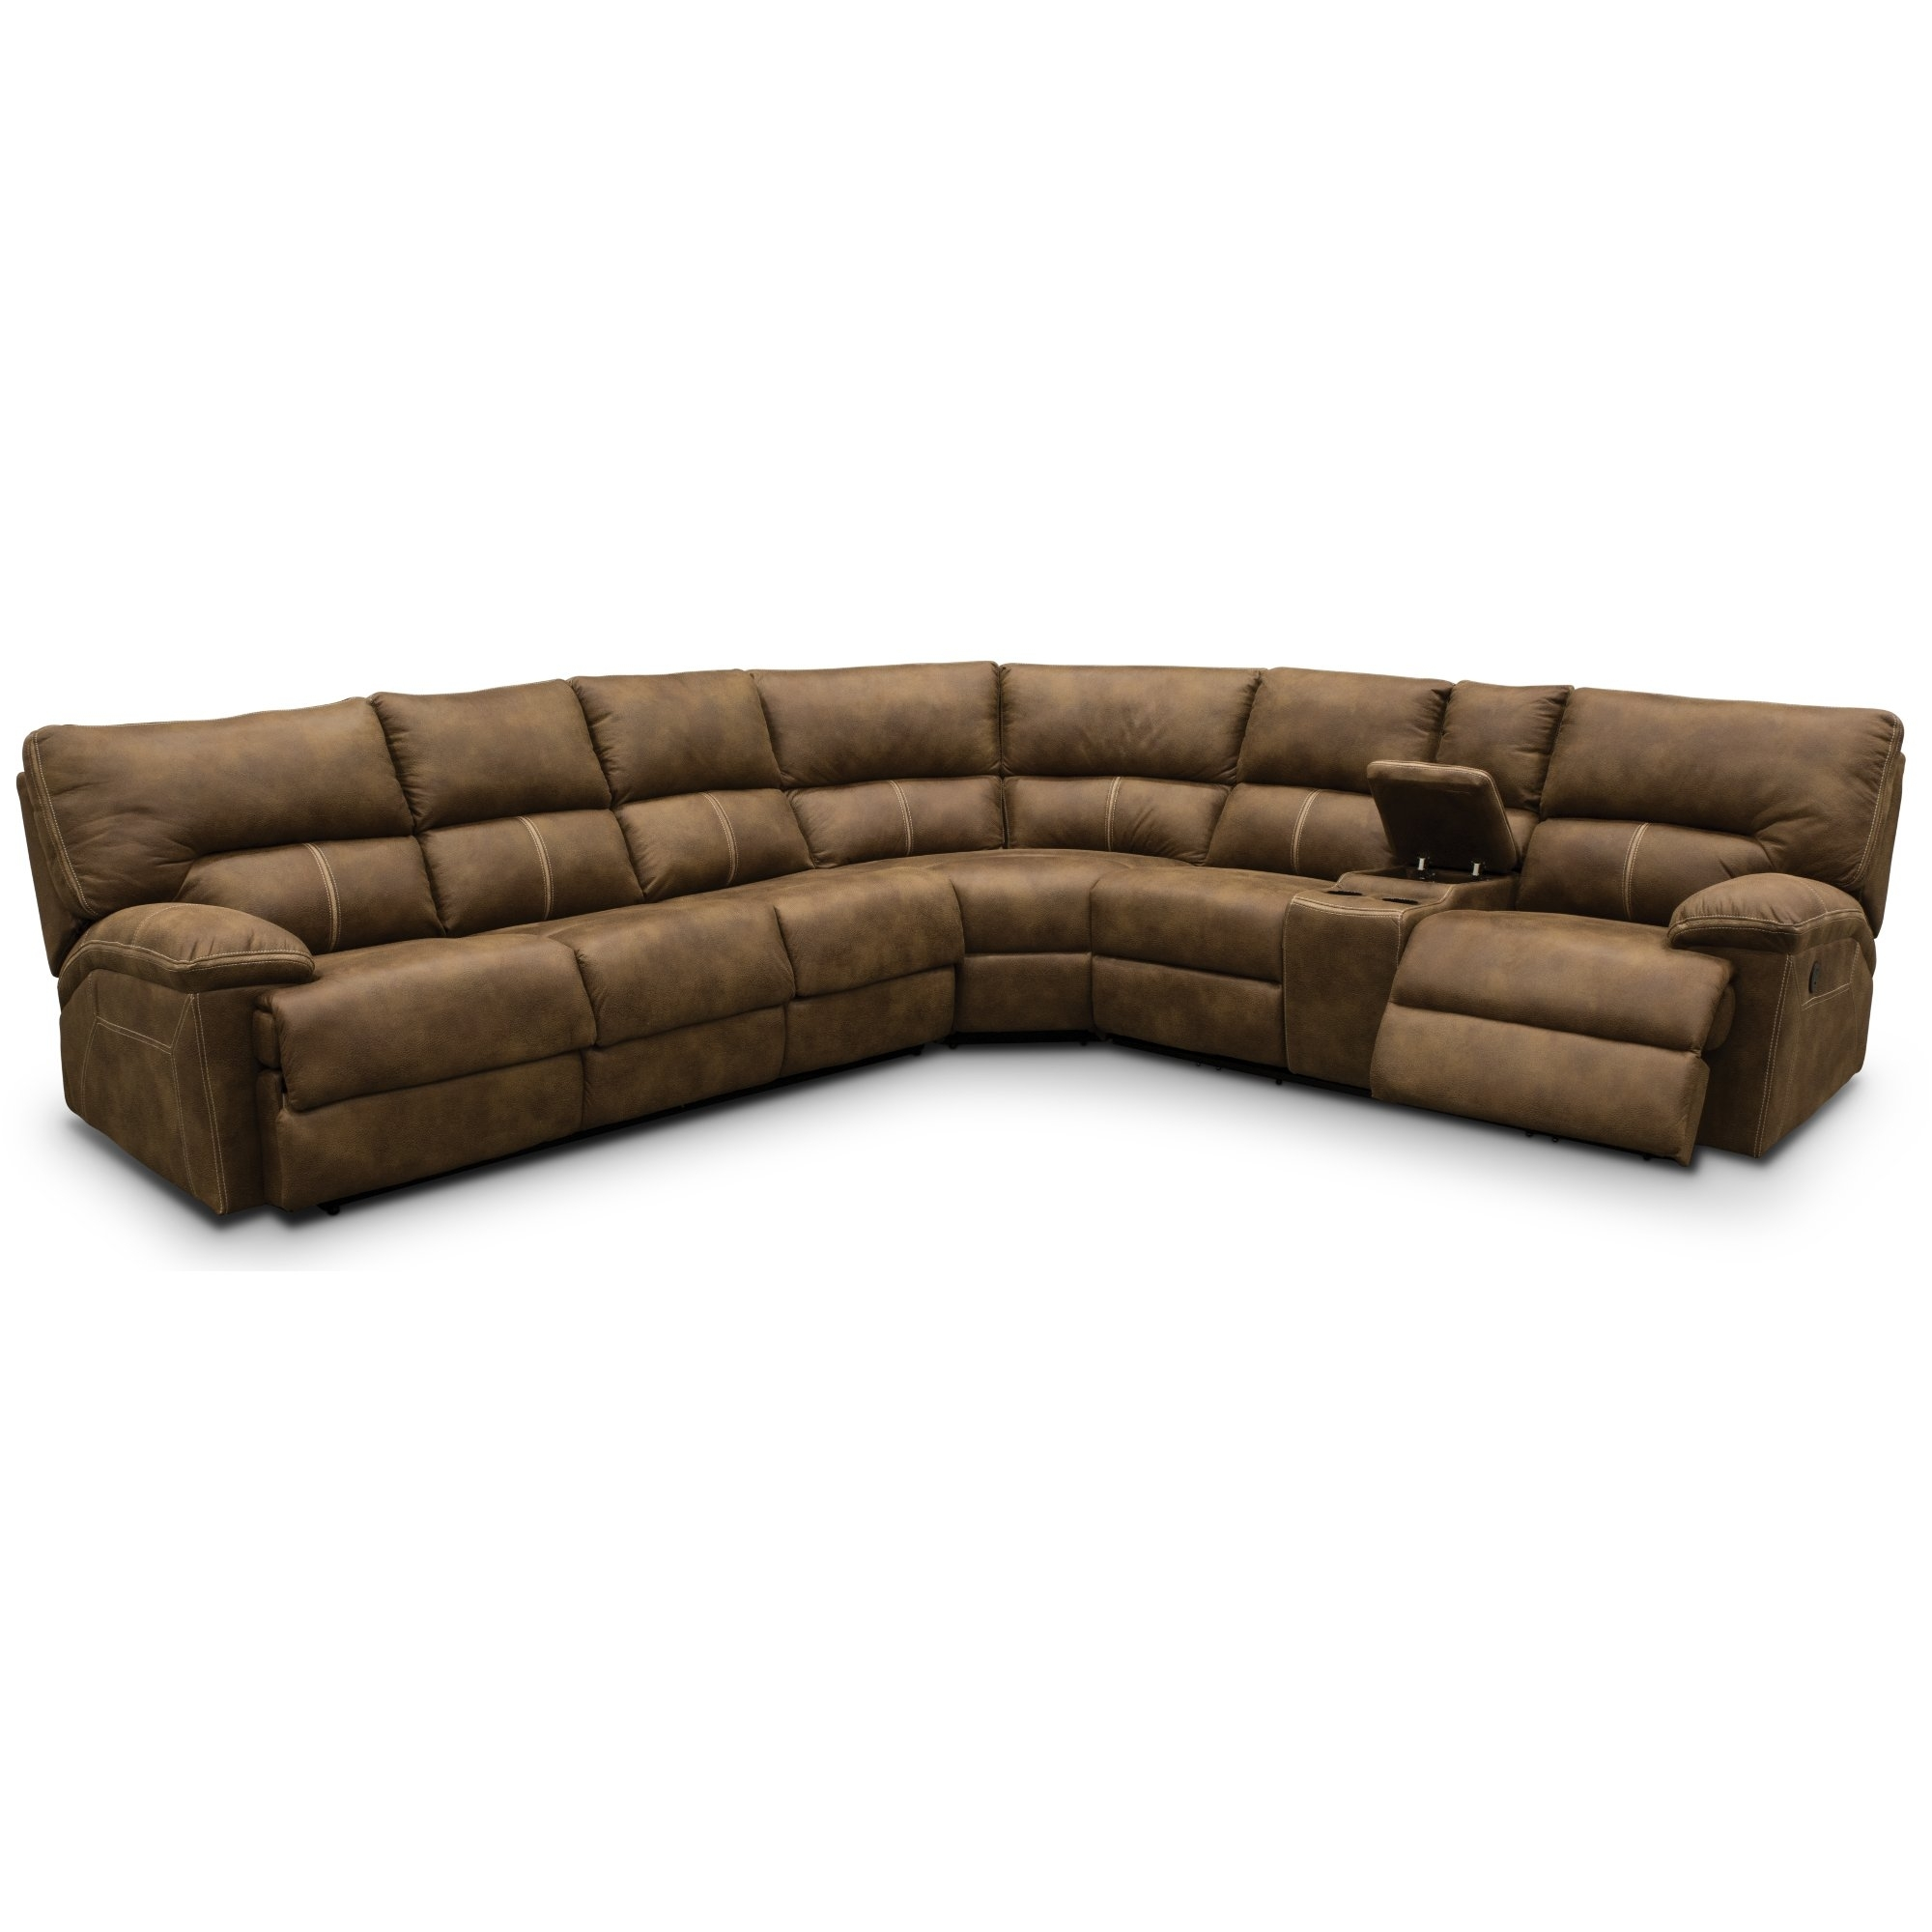 3 Piece Sectional Sofa With Recliner | Thesofasite.co Inside Taron 3 Piece Power Reclining Sectionals With Right Facing Console Loveseat (Photo 5 of 30)